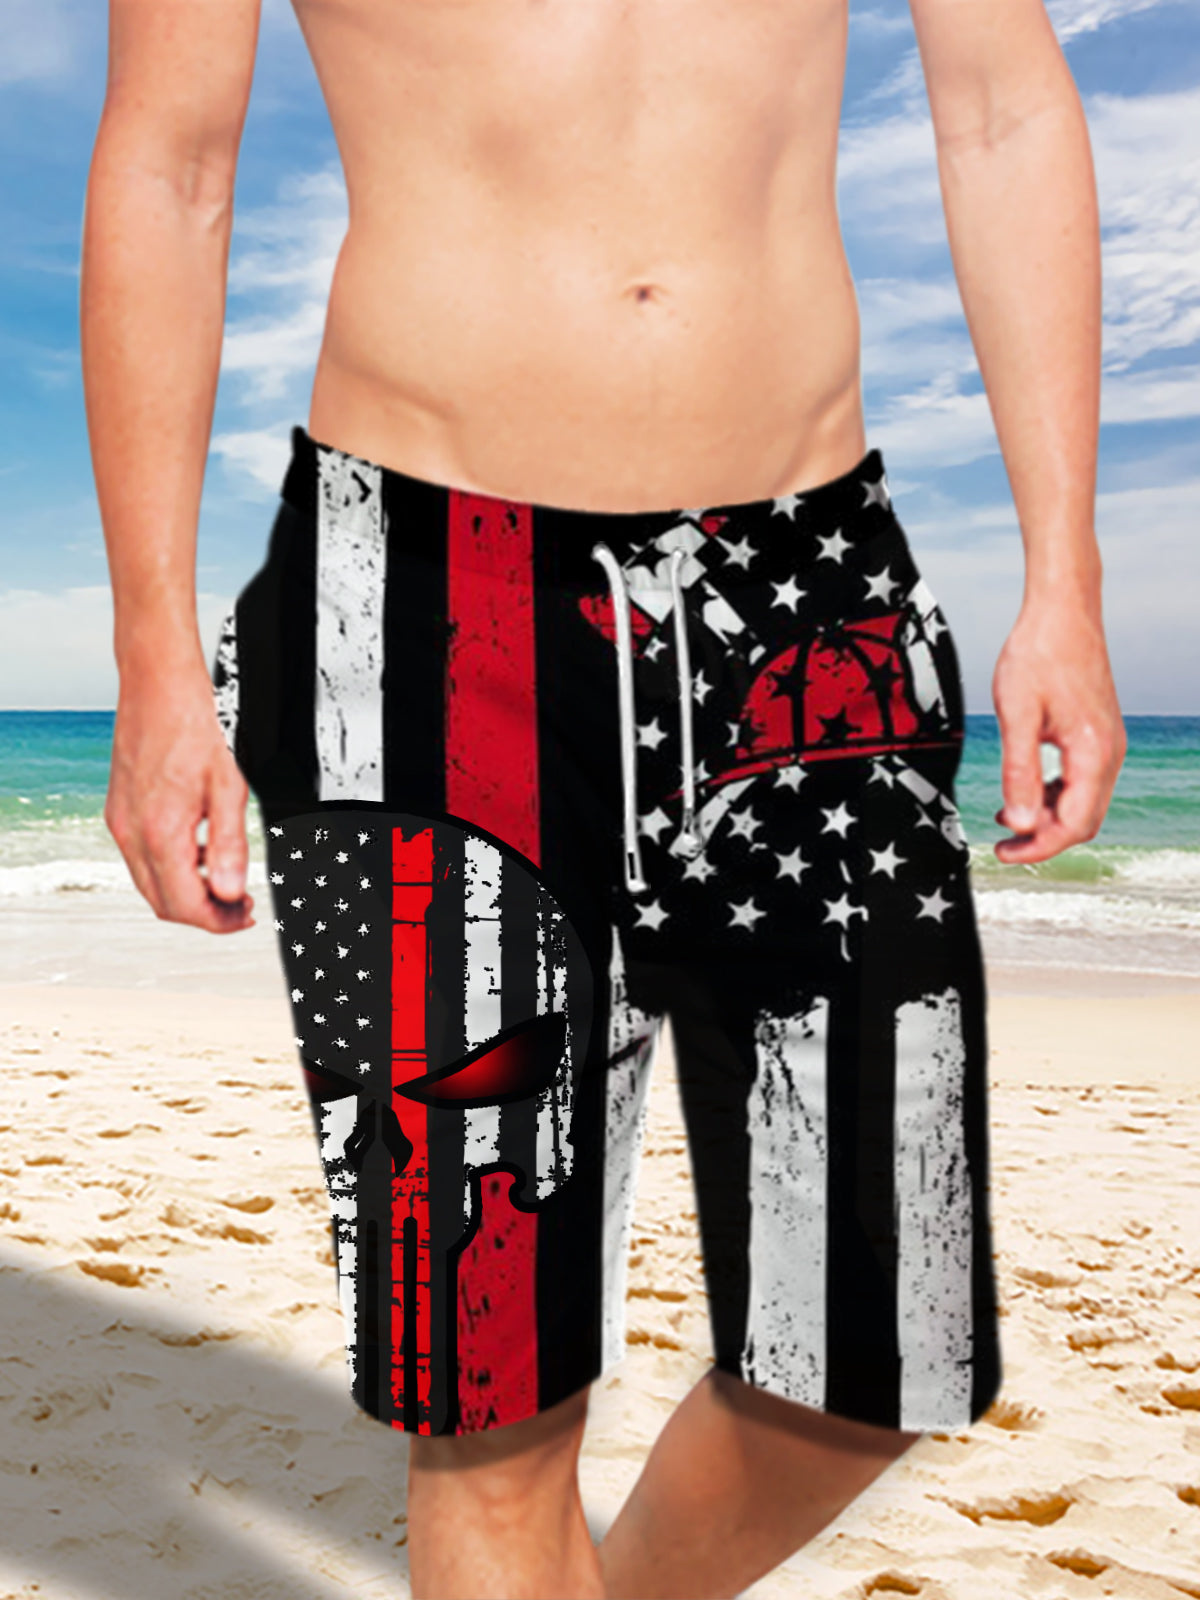 Ultra-light Drawstring Shorts for Men - FIRE DEPT. Firefighter 005